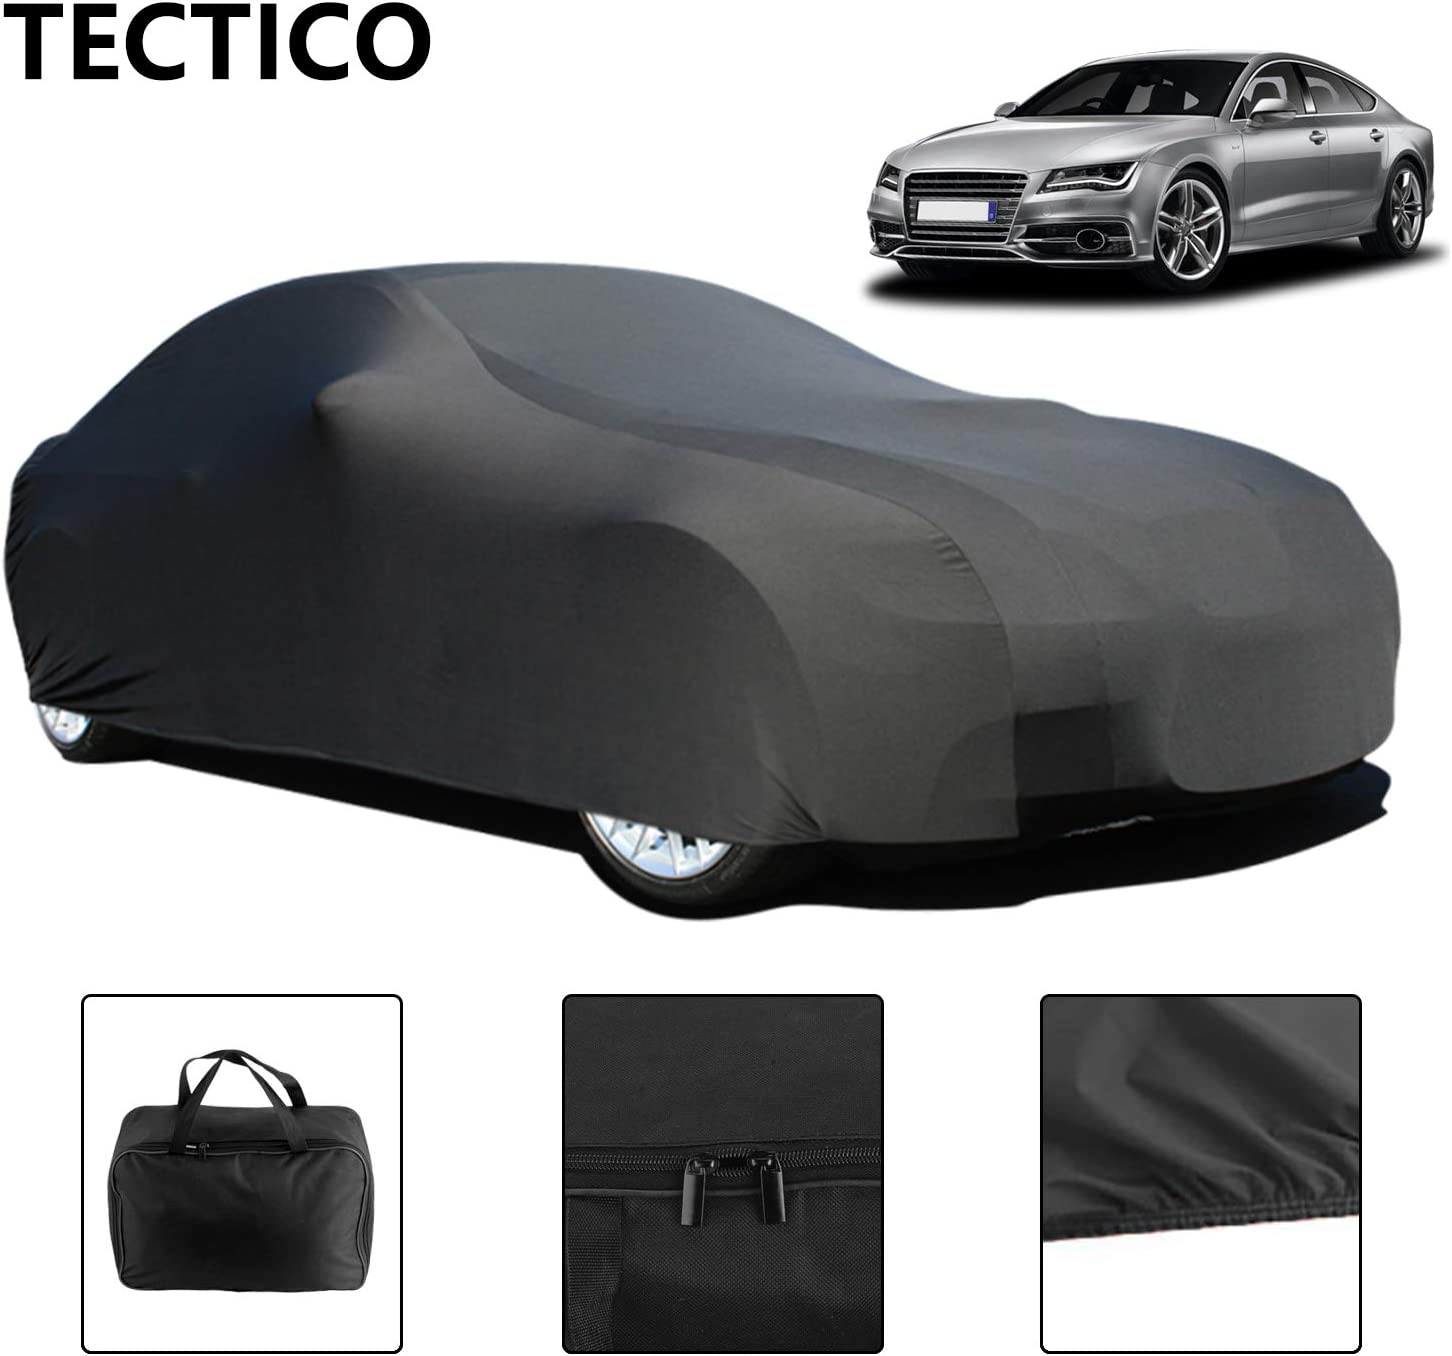 Black TECTICO Indoor Sports Car Cover Velvet Stretch Elastic Dustproof Anti-Wrinkle Auto Full Protection for Underground Garage//Car Show